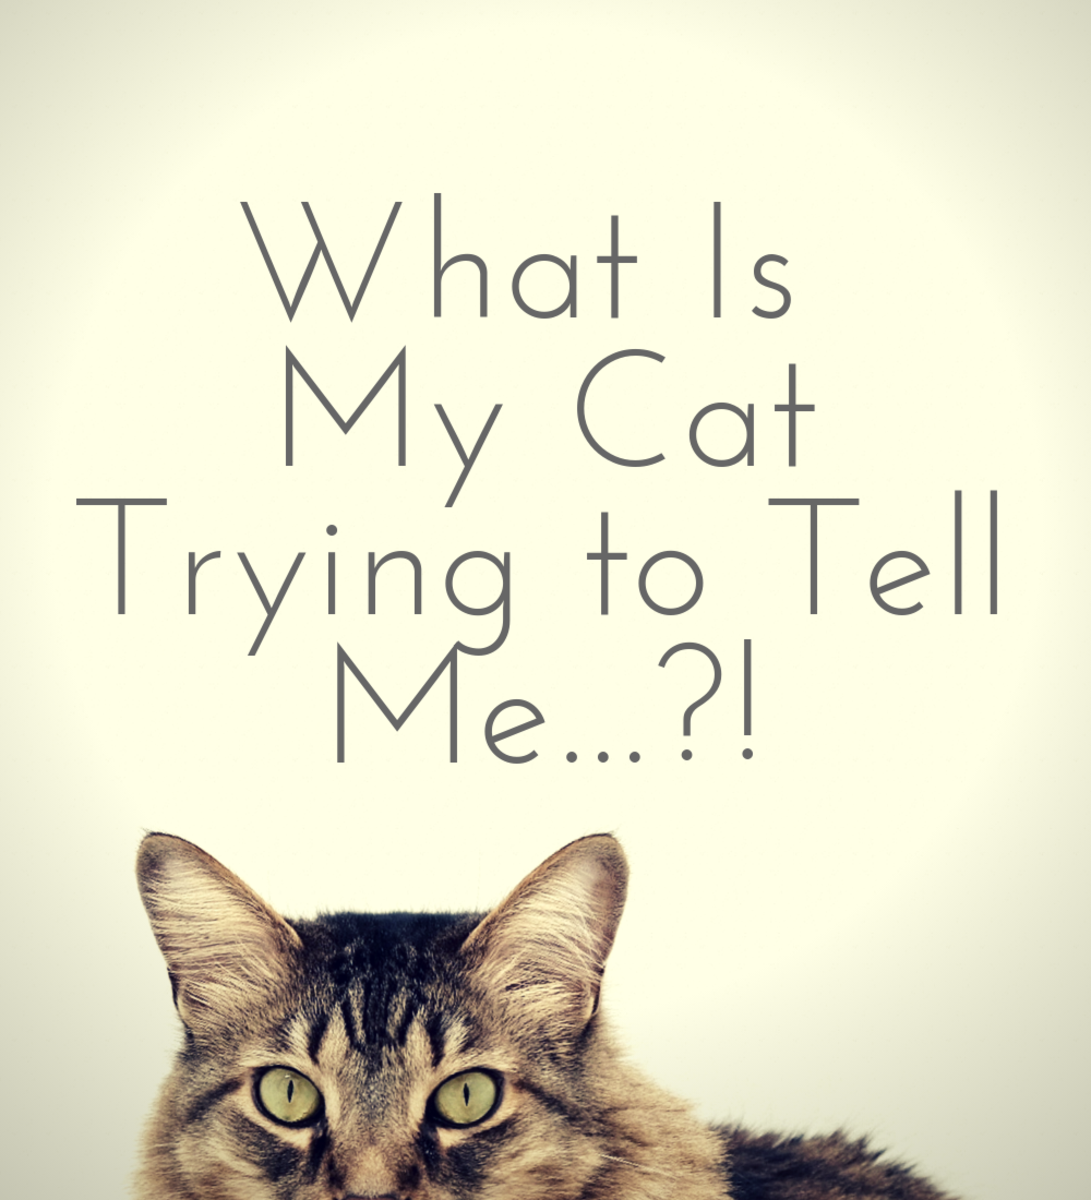 Why Is My Cat so Affectionate? Understanding a Cat's Body Language